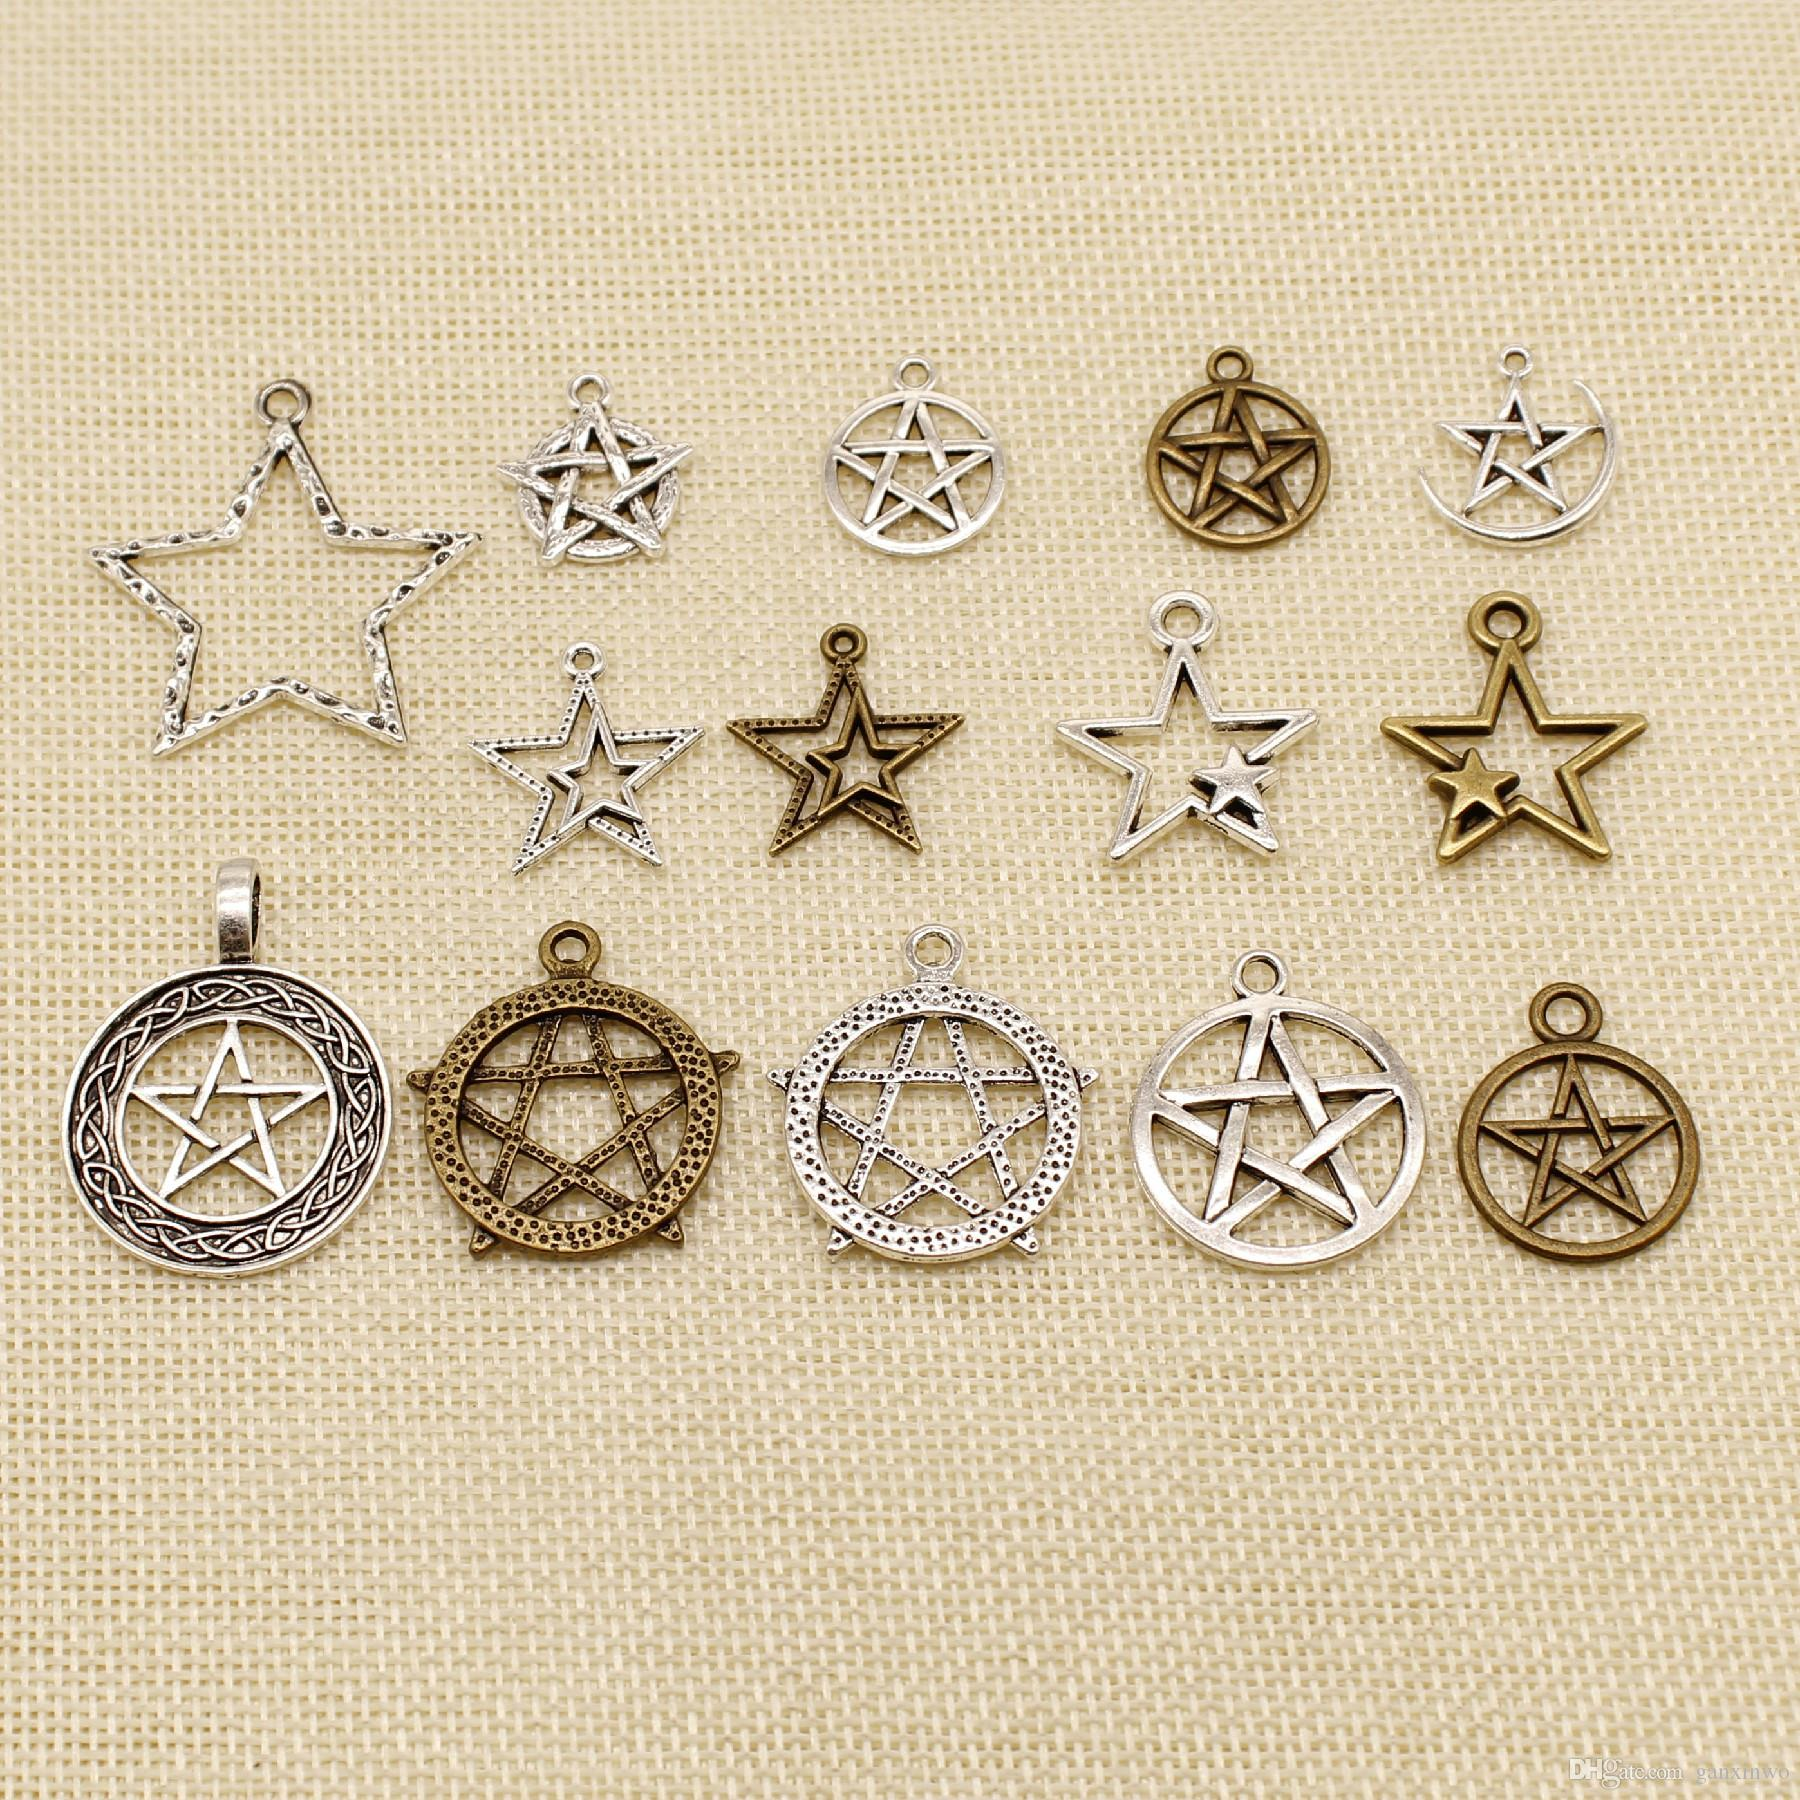 40 Pieces Charm For Making Jewelry Diy Hollow Five-Pointed Star Connection HJ212